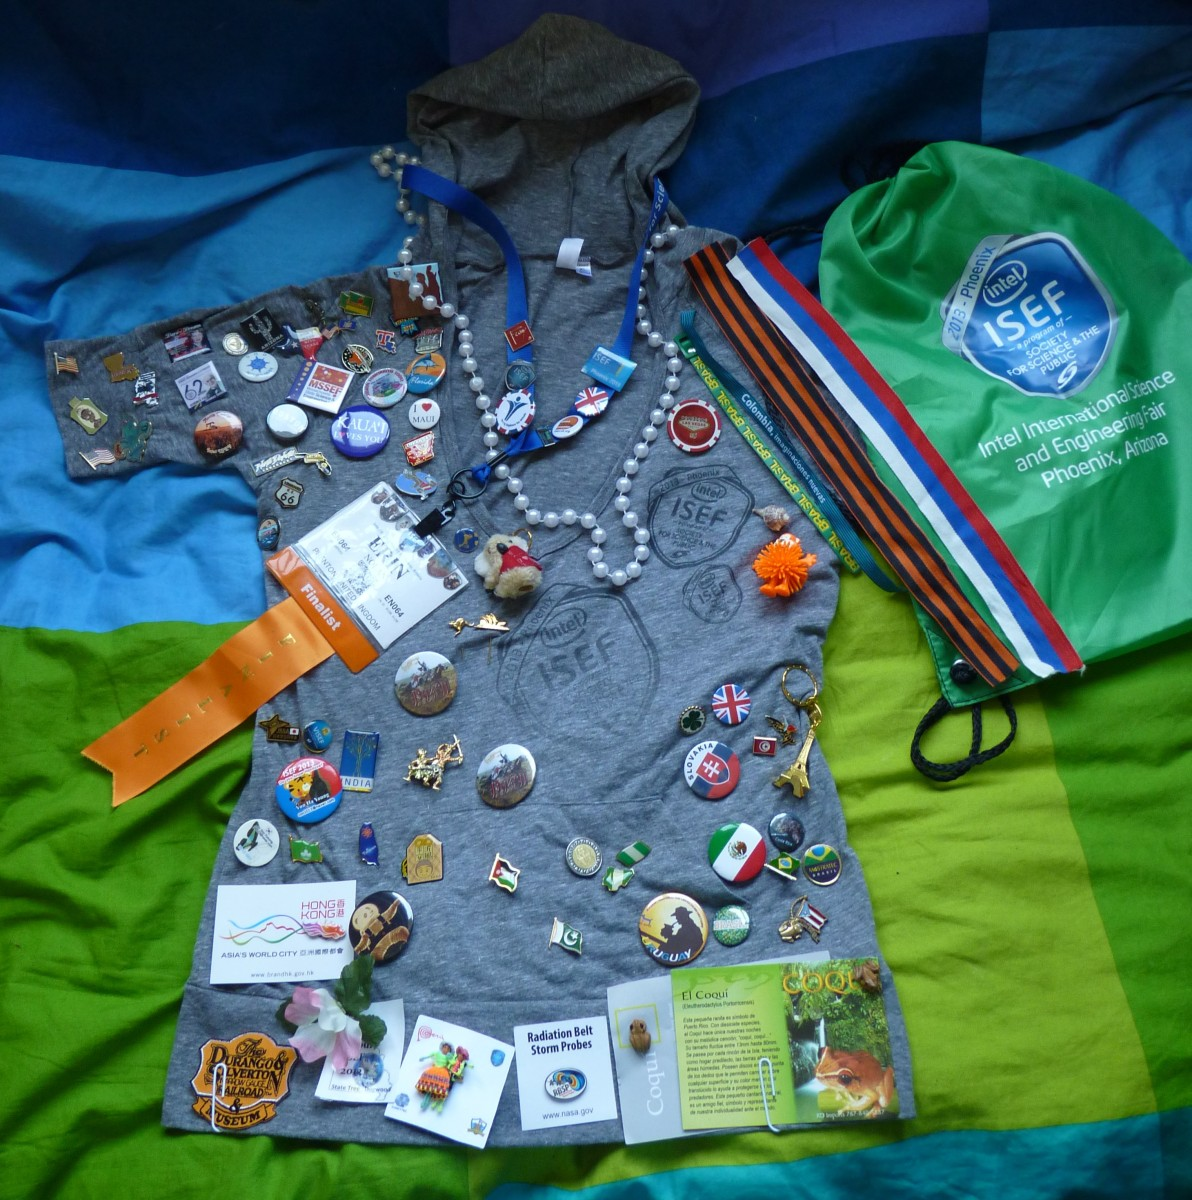 ISEF Badges & Other Things